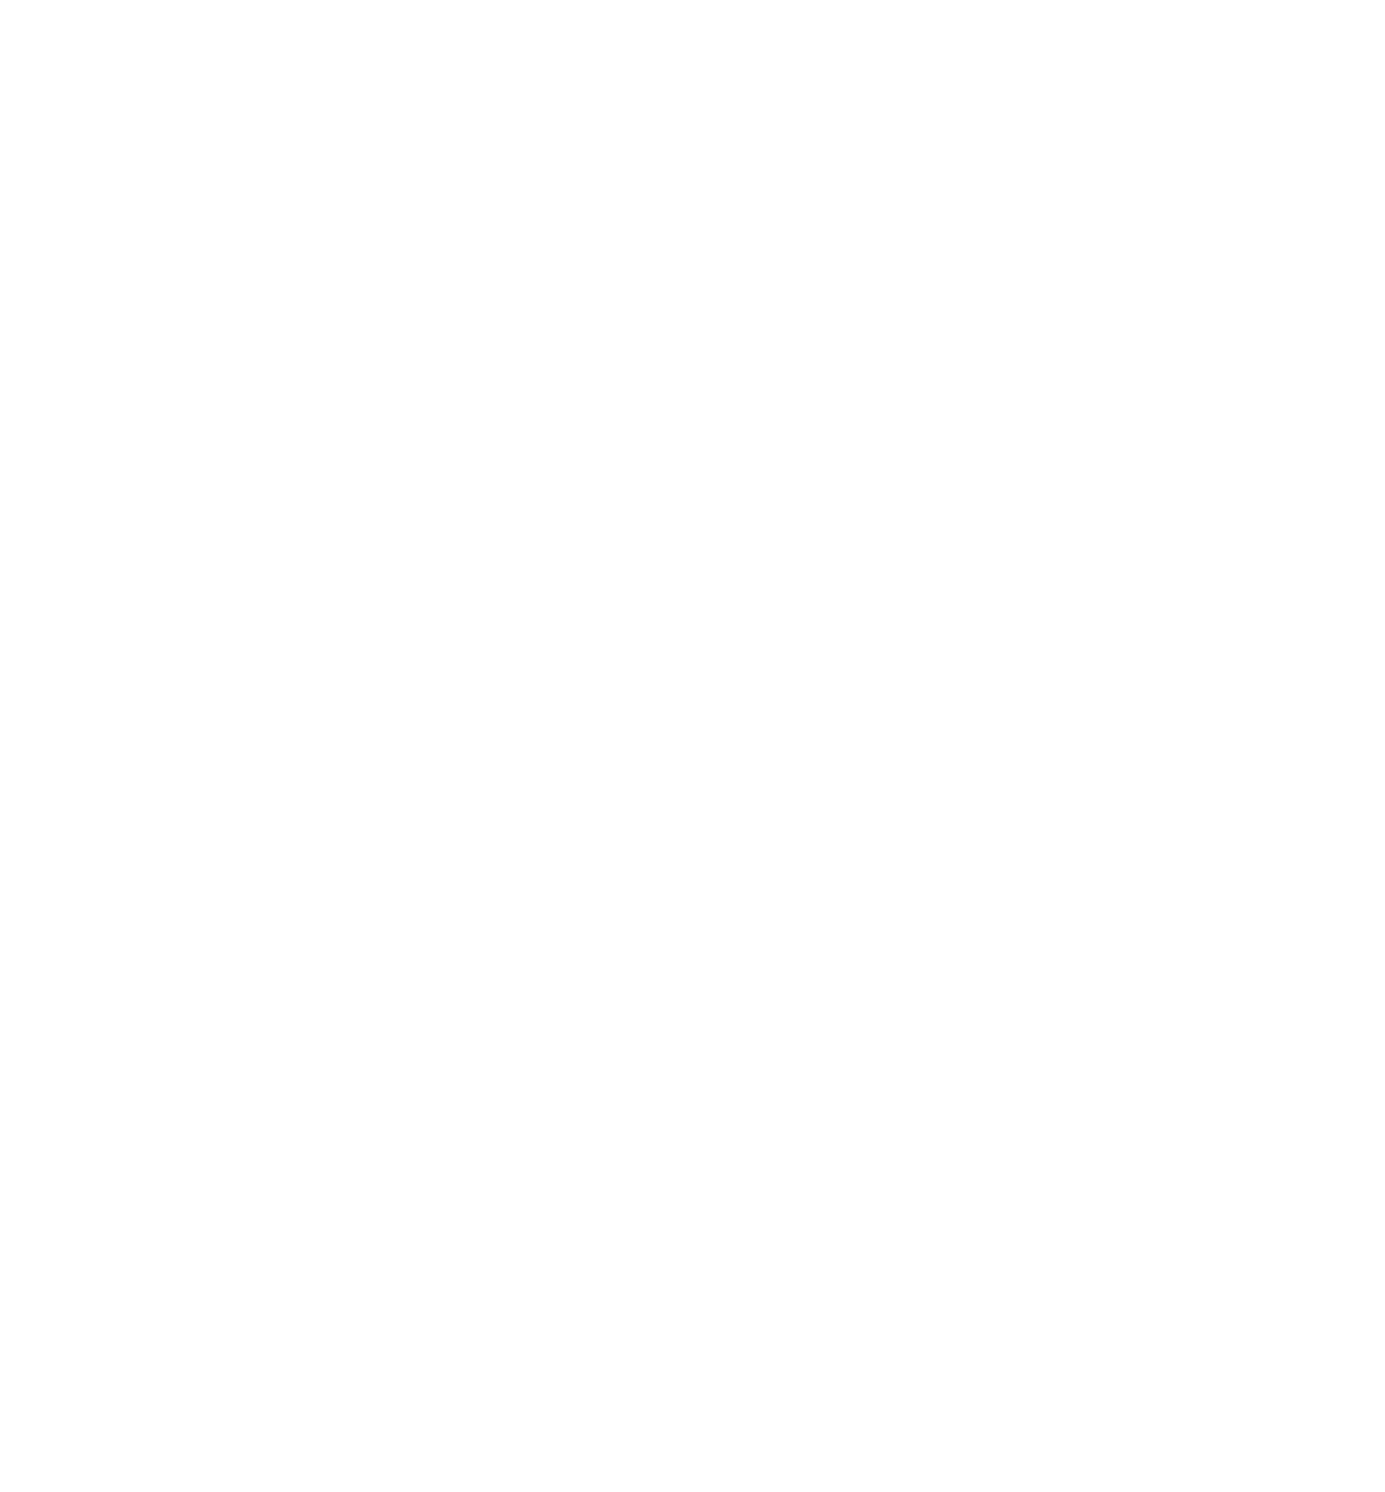 Tatanka's science atom logo